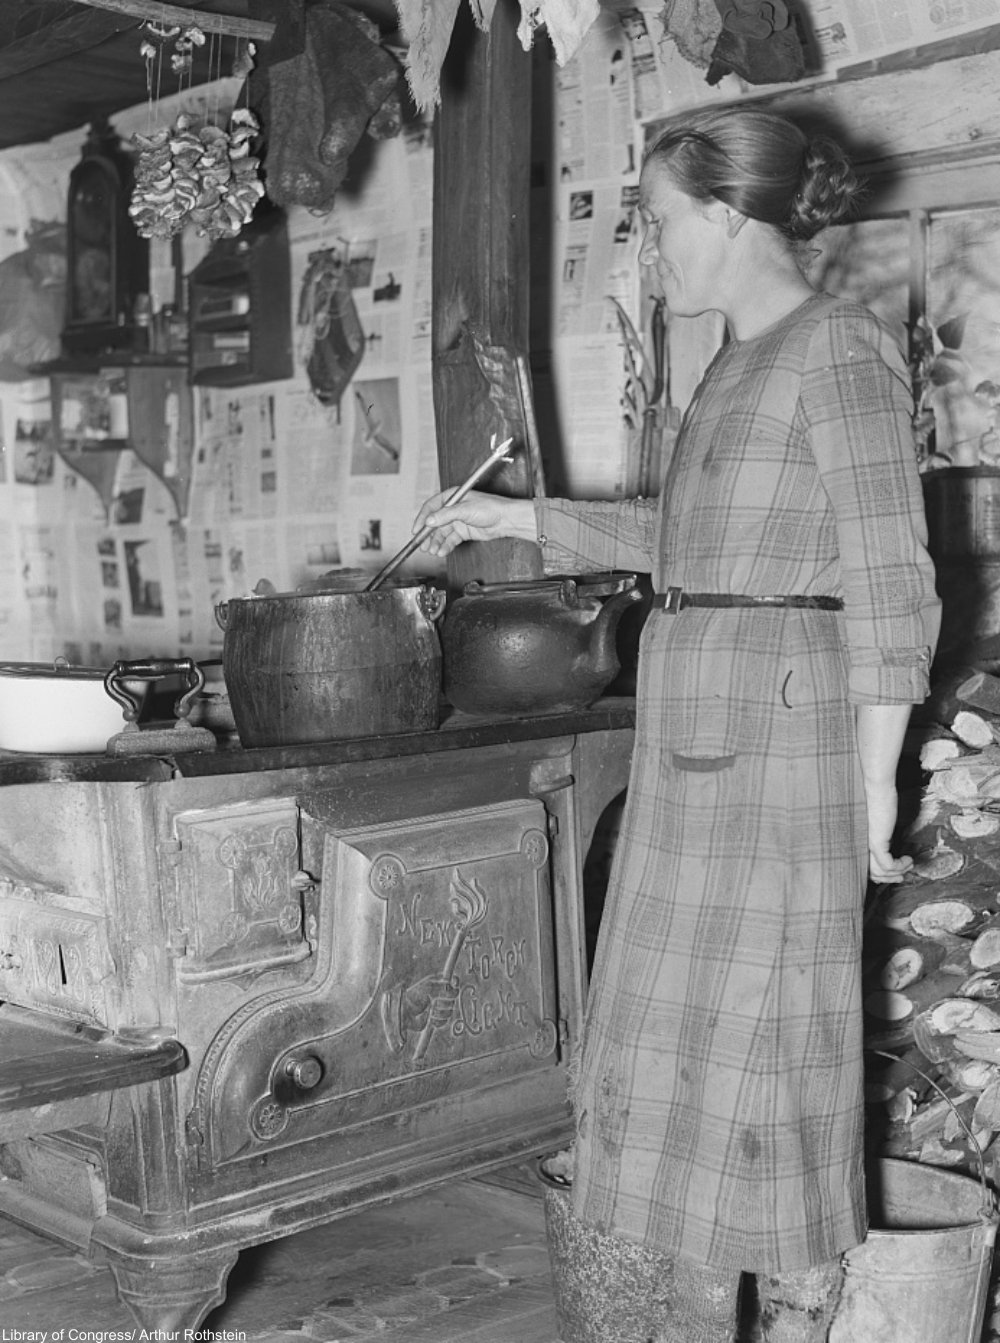 making soup in the 1930s